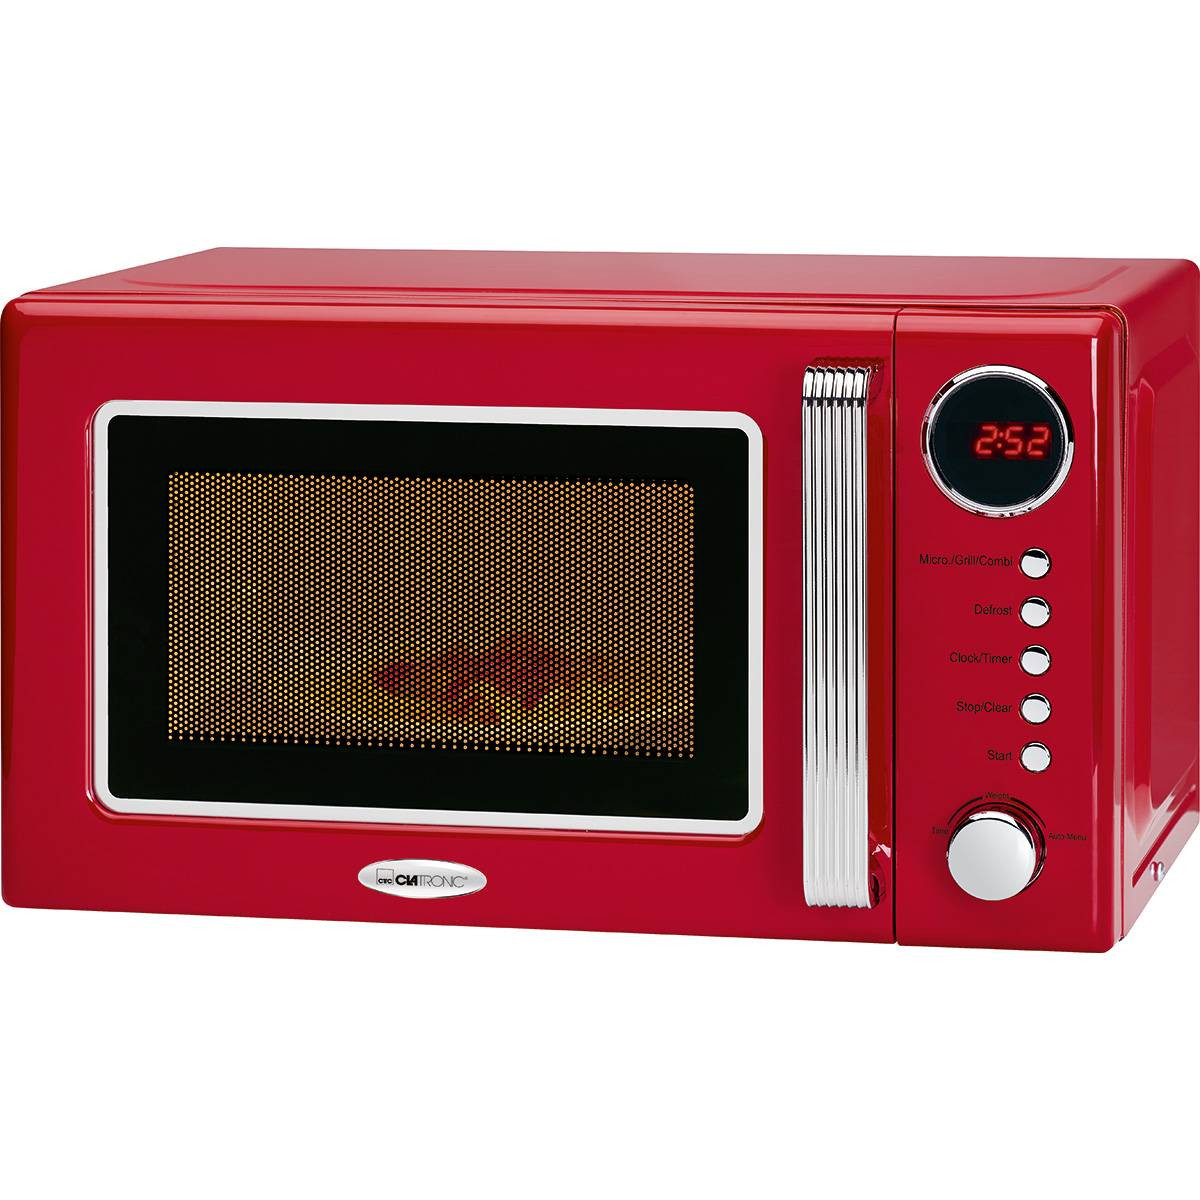 Clatronic MWG 790 - Microondas con grill retro 20 litros, 700/1000W, display digital, timer, color rojo